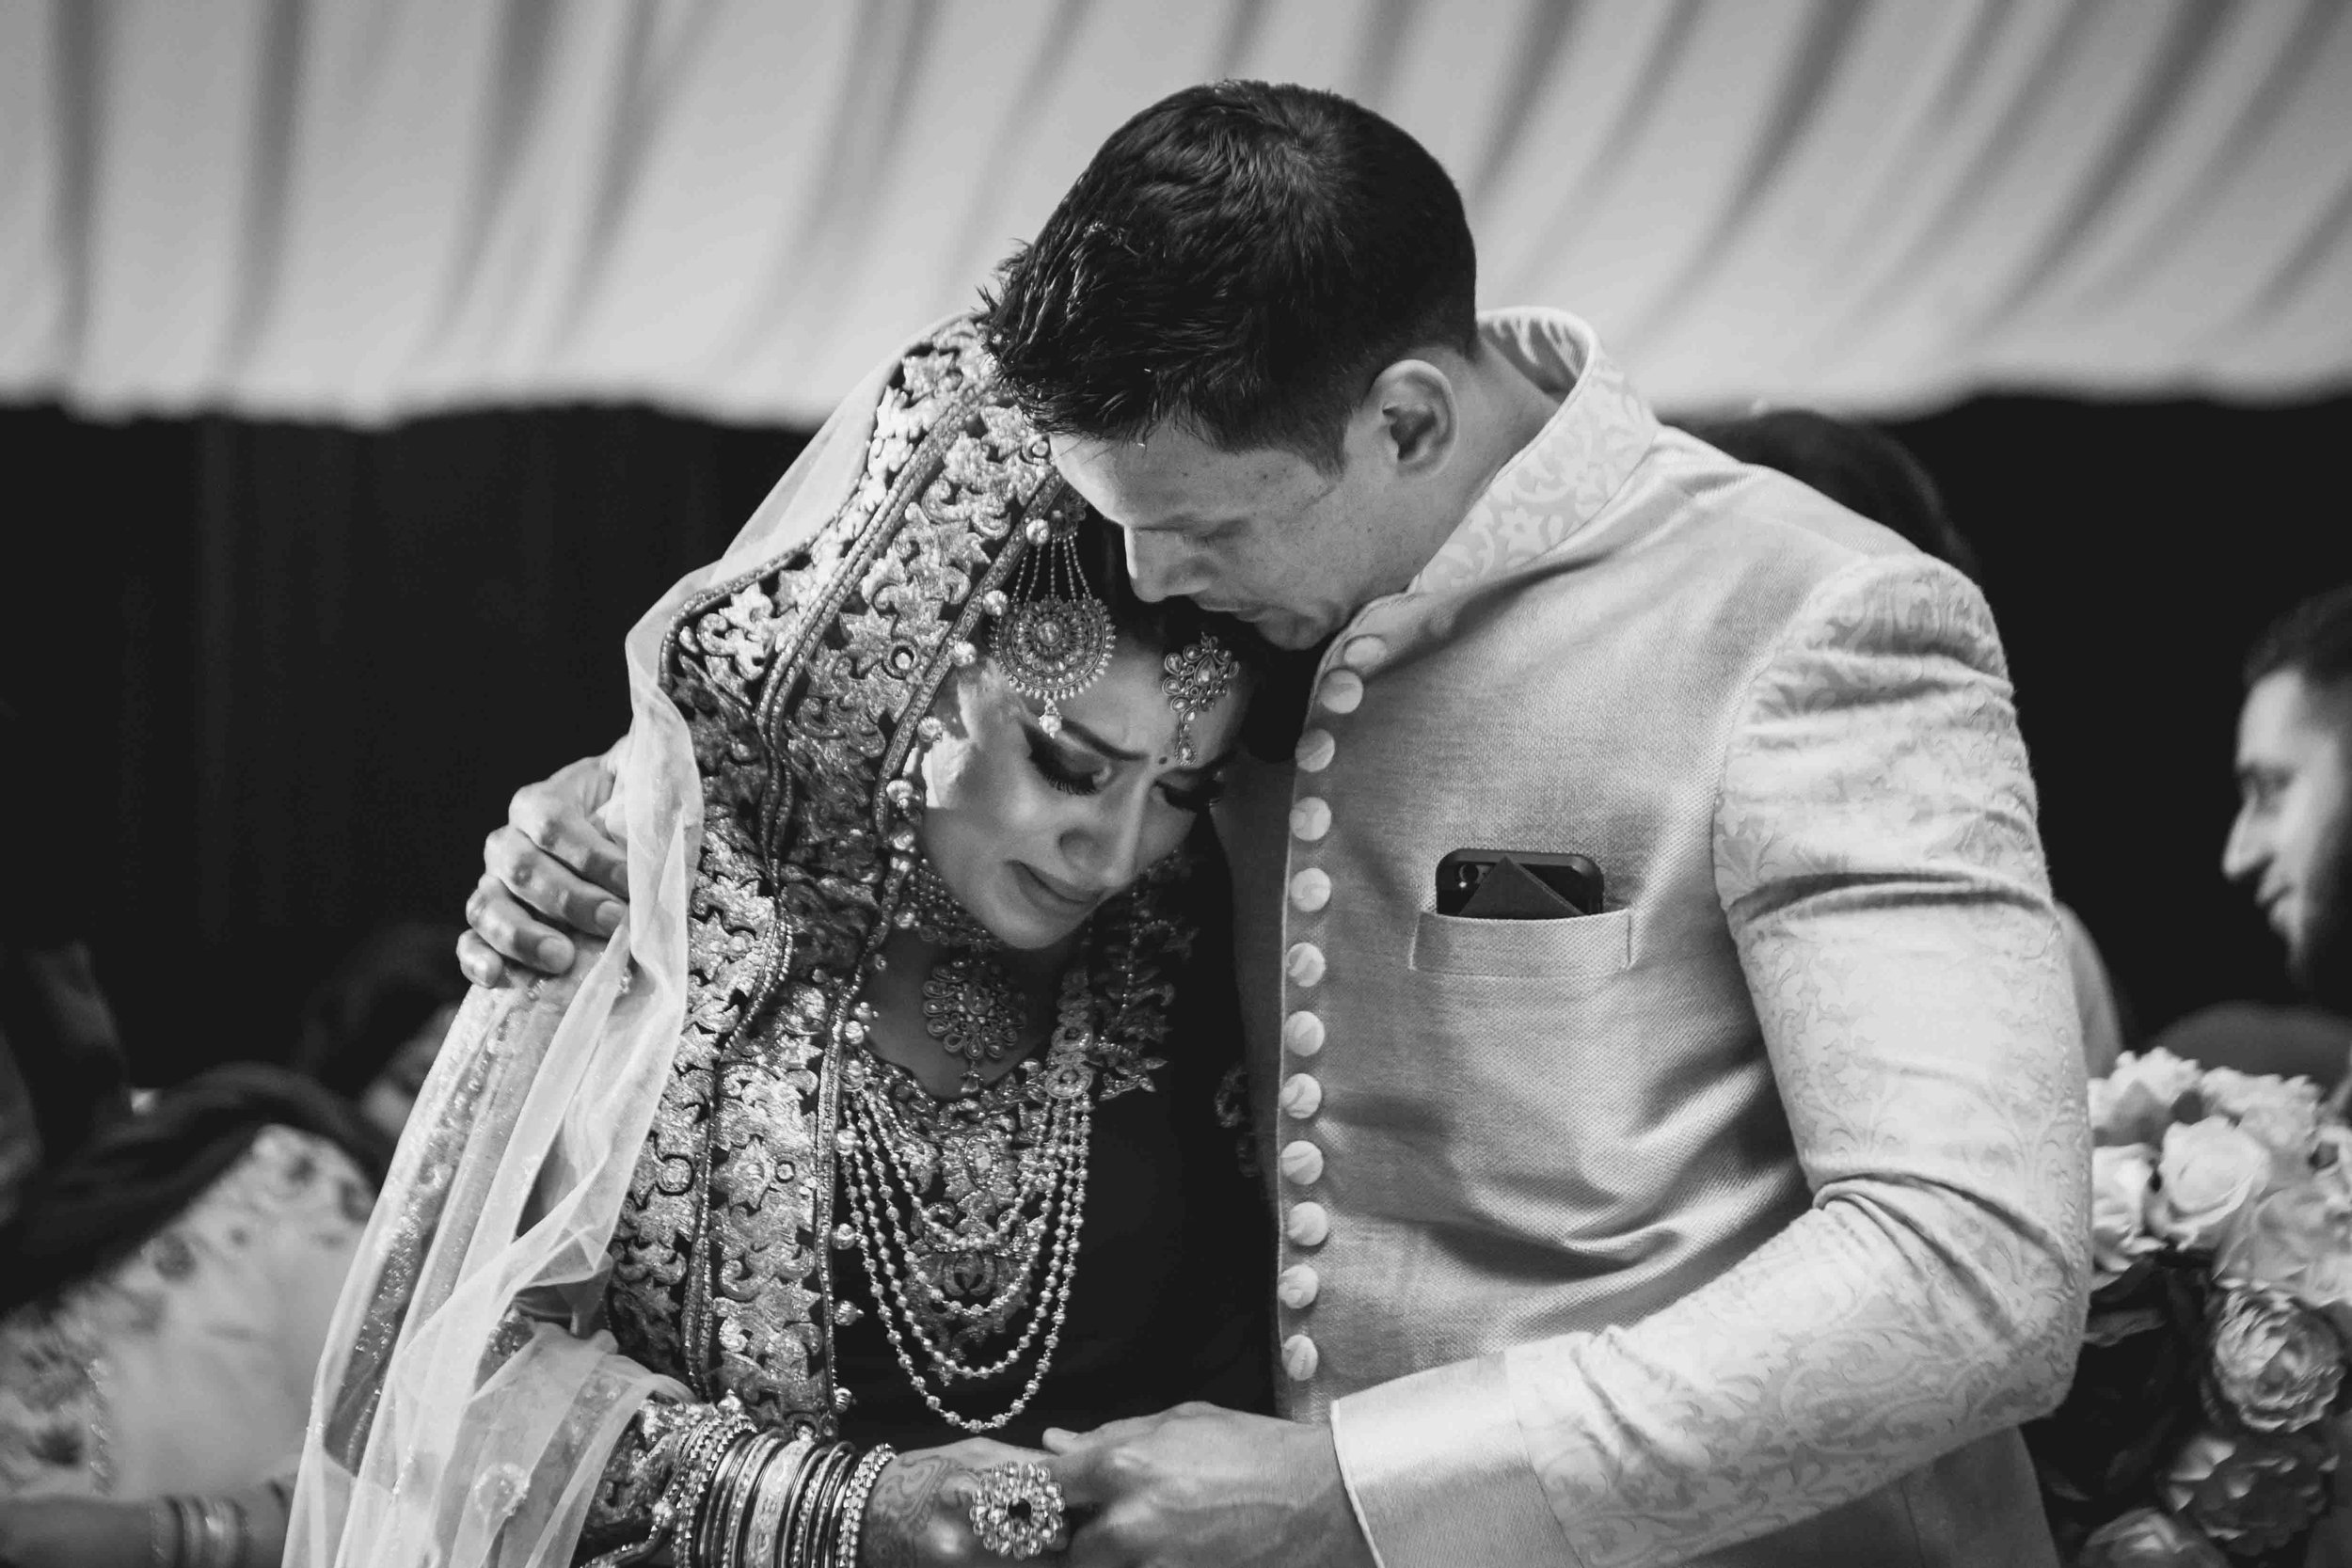 Asian Wedding Photographer Opu Sultan Photography portsmouth Scotland Edinburgh Glasgow London Manchester Liverpool Birmingham Wedding Photos prewed shoot Luko & Rujina Blog-24.jpg